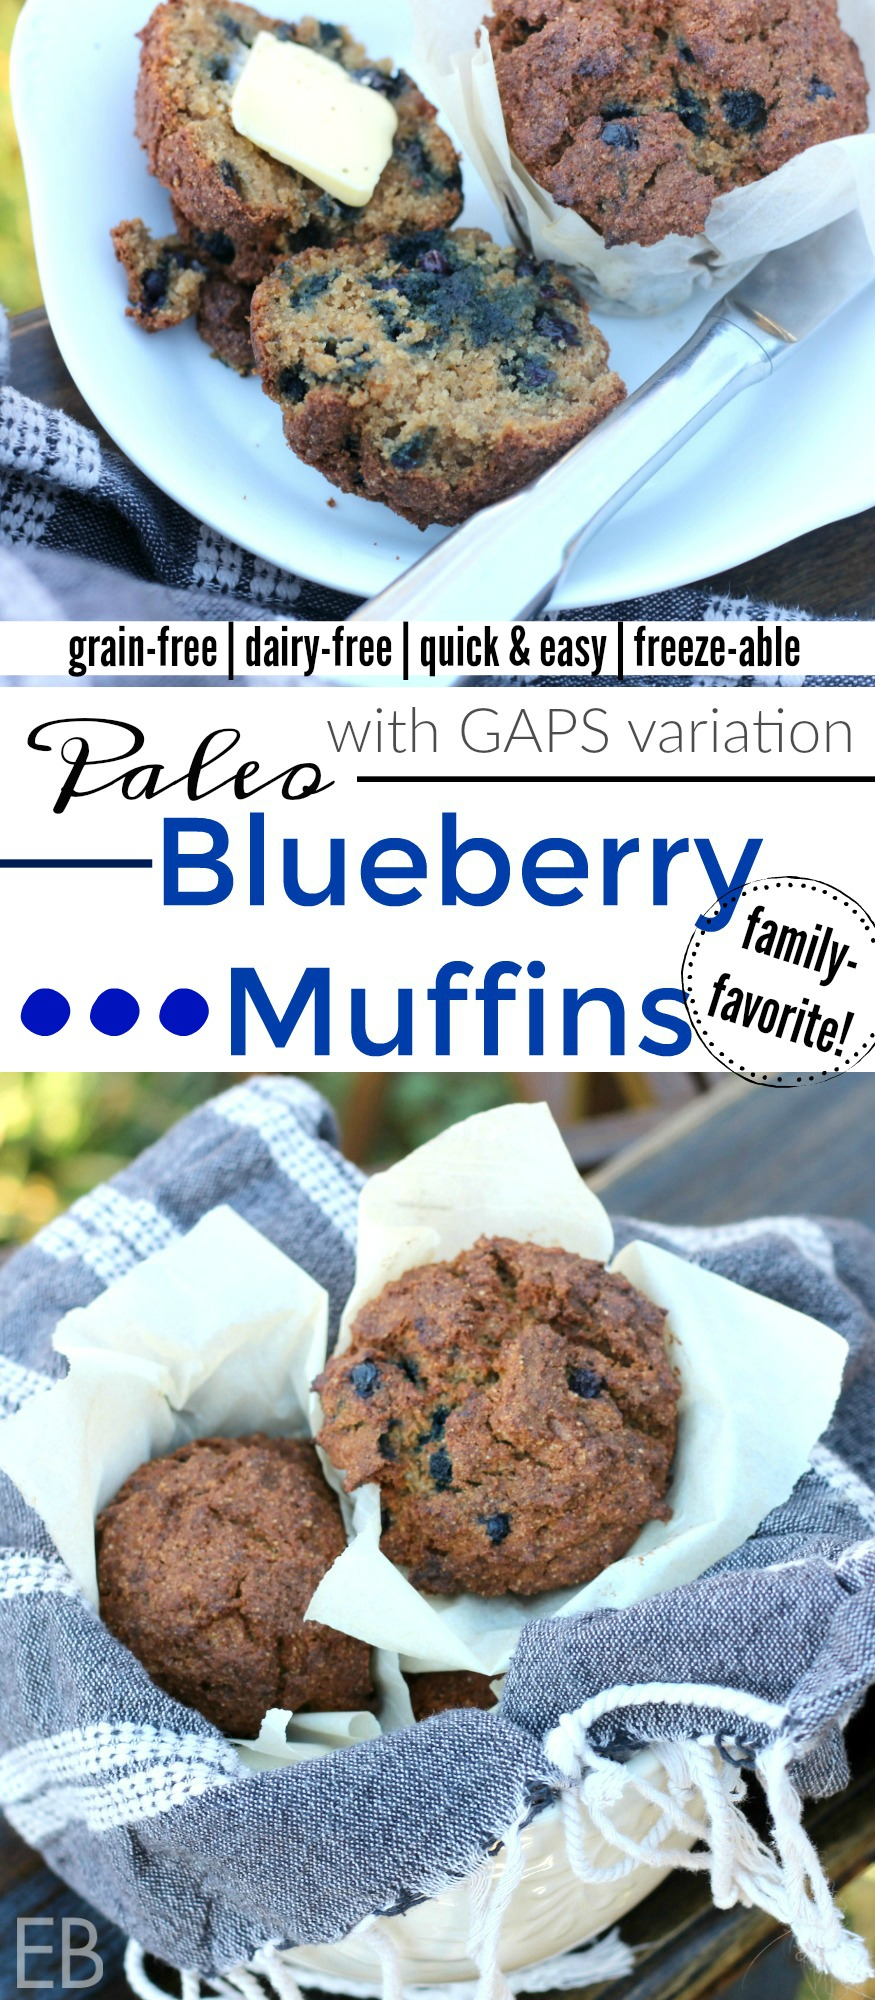 Paleo Blueberry Muffins {with GAPS diet variation and bonus instructions for How to Make Homemade Sprouted Nut Meal} #paleoblueberrymuffin #paleoblueberry #paleomuffin #sproutednutflour #howtosproutnuts #gapsblueberrymuffin #grainfreeblueberrymuffin